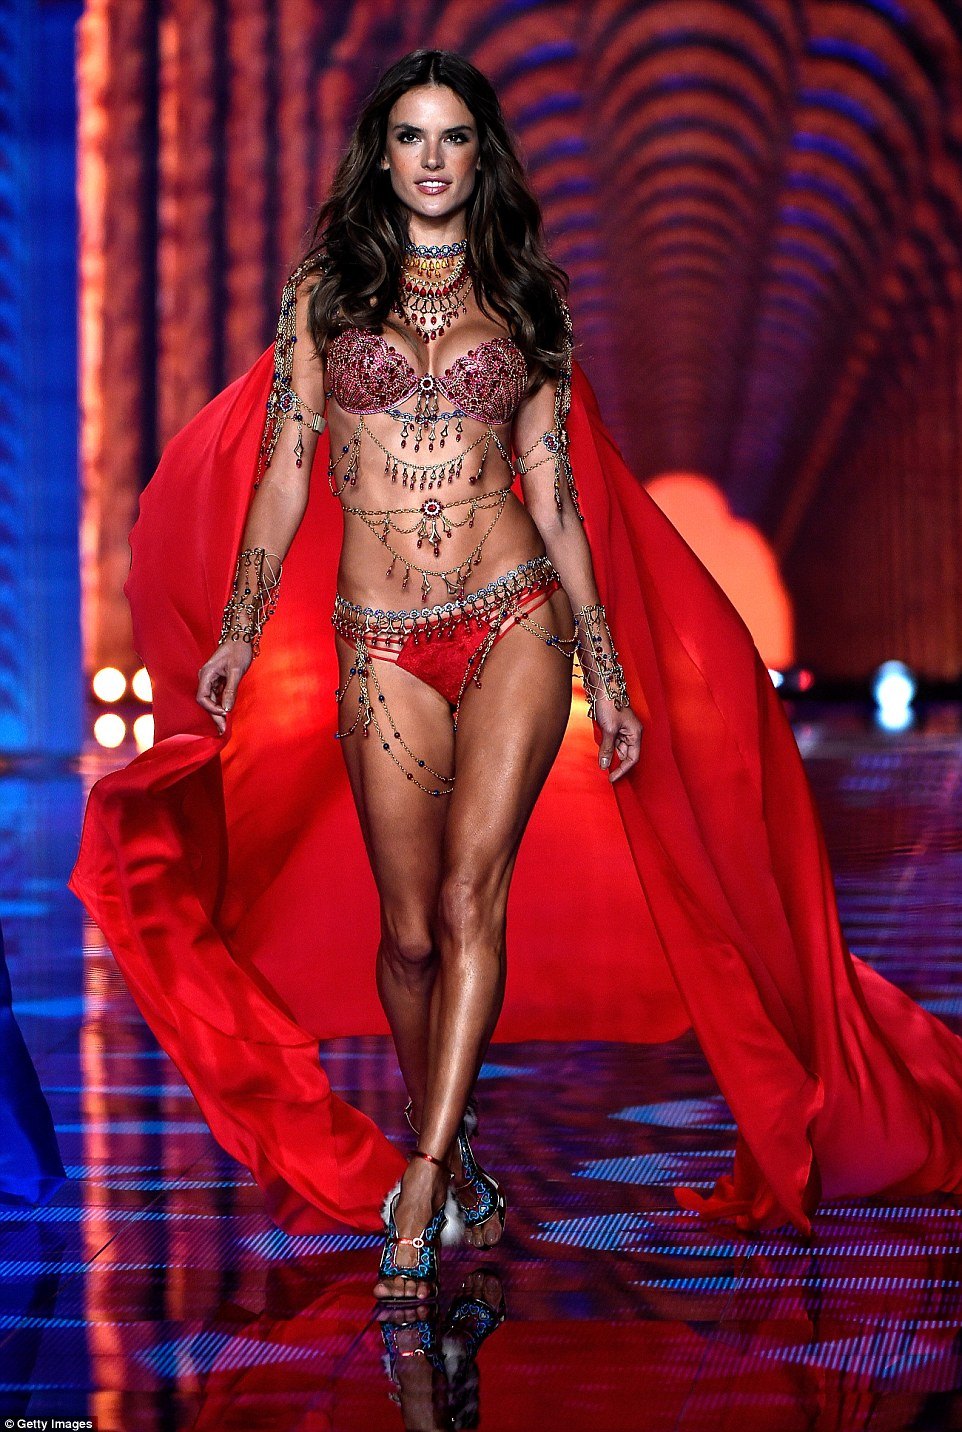 Brazilian goddess: Alessandra, 33, looked more glorious than ever in the red, glitzy item and flowing red cape behind her, as she revealed her impressively toned thighs